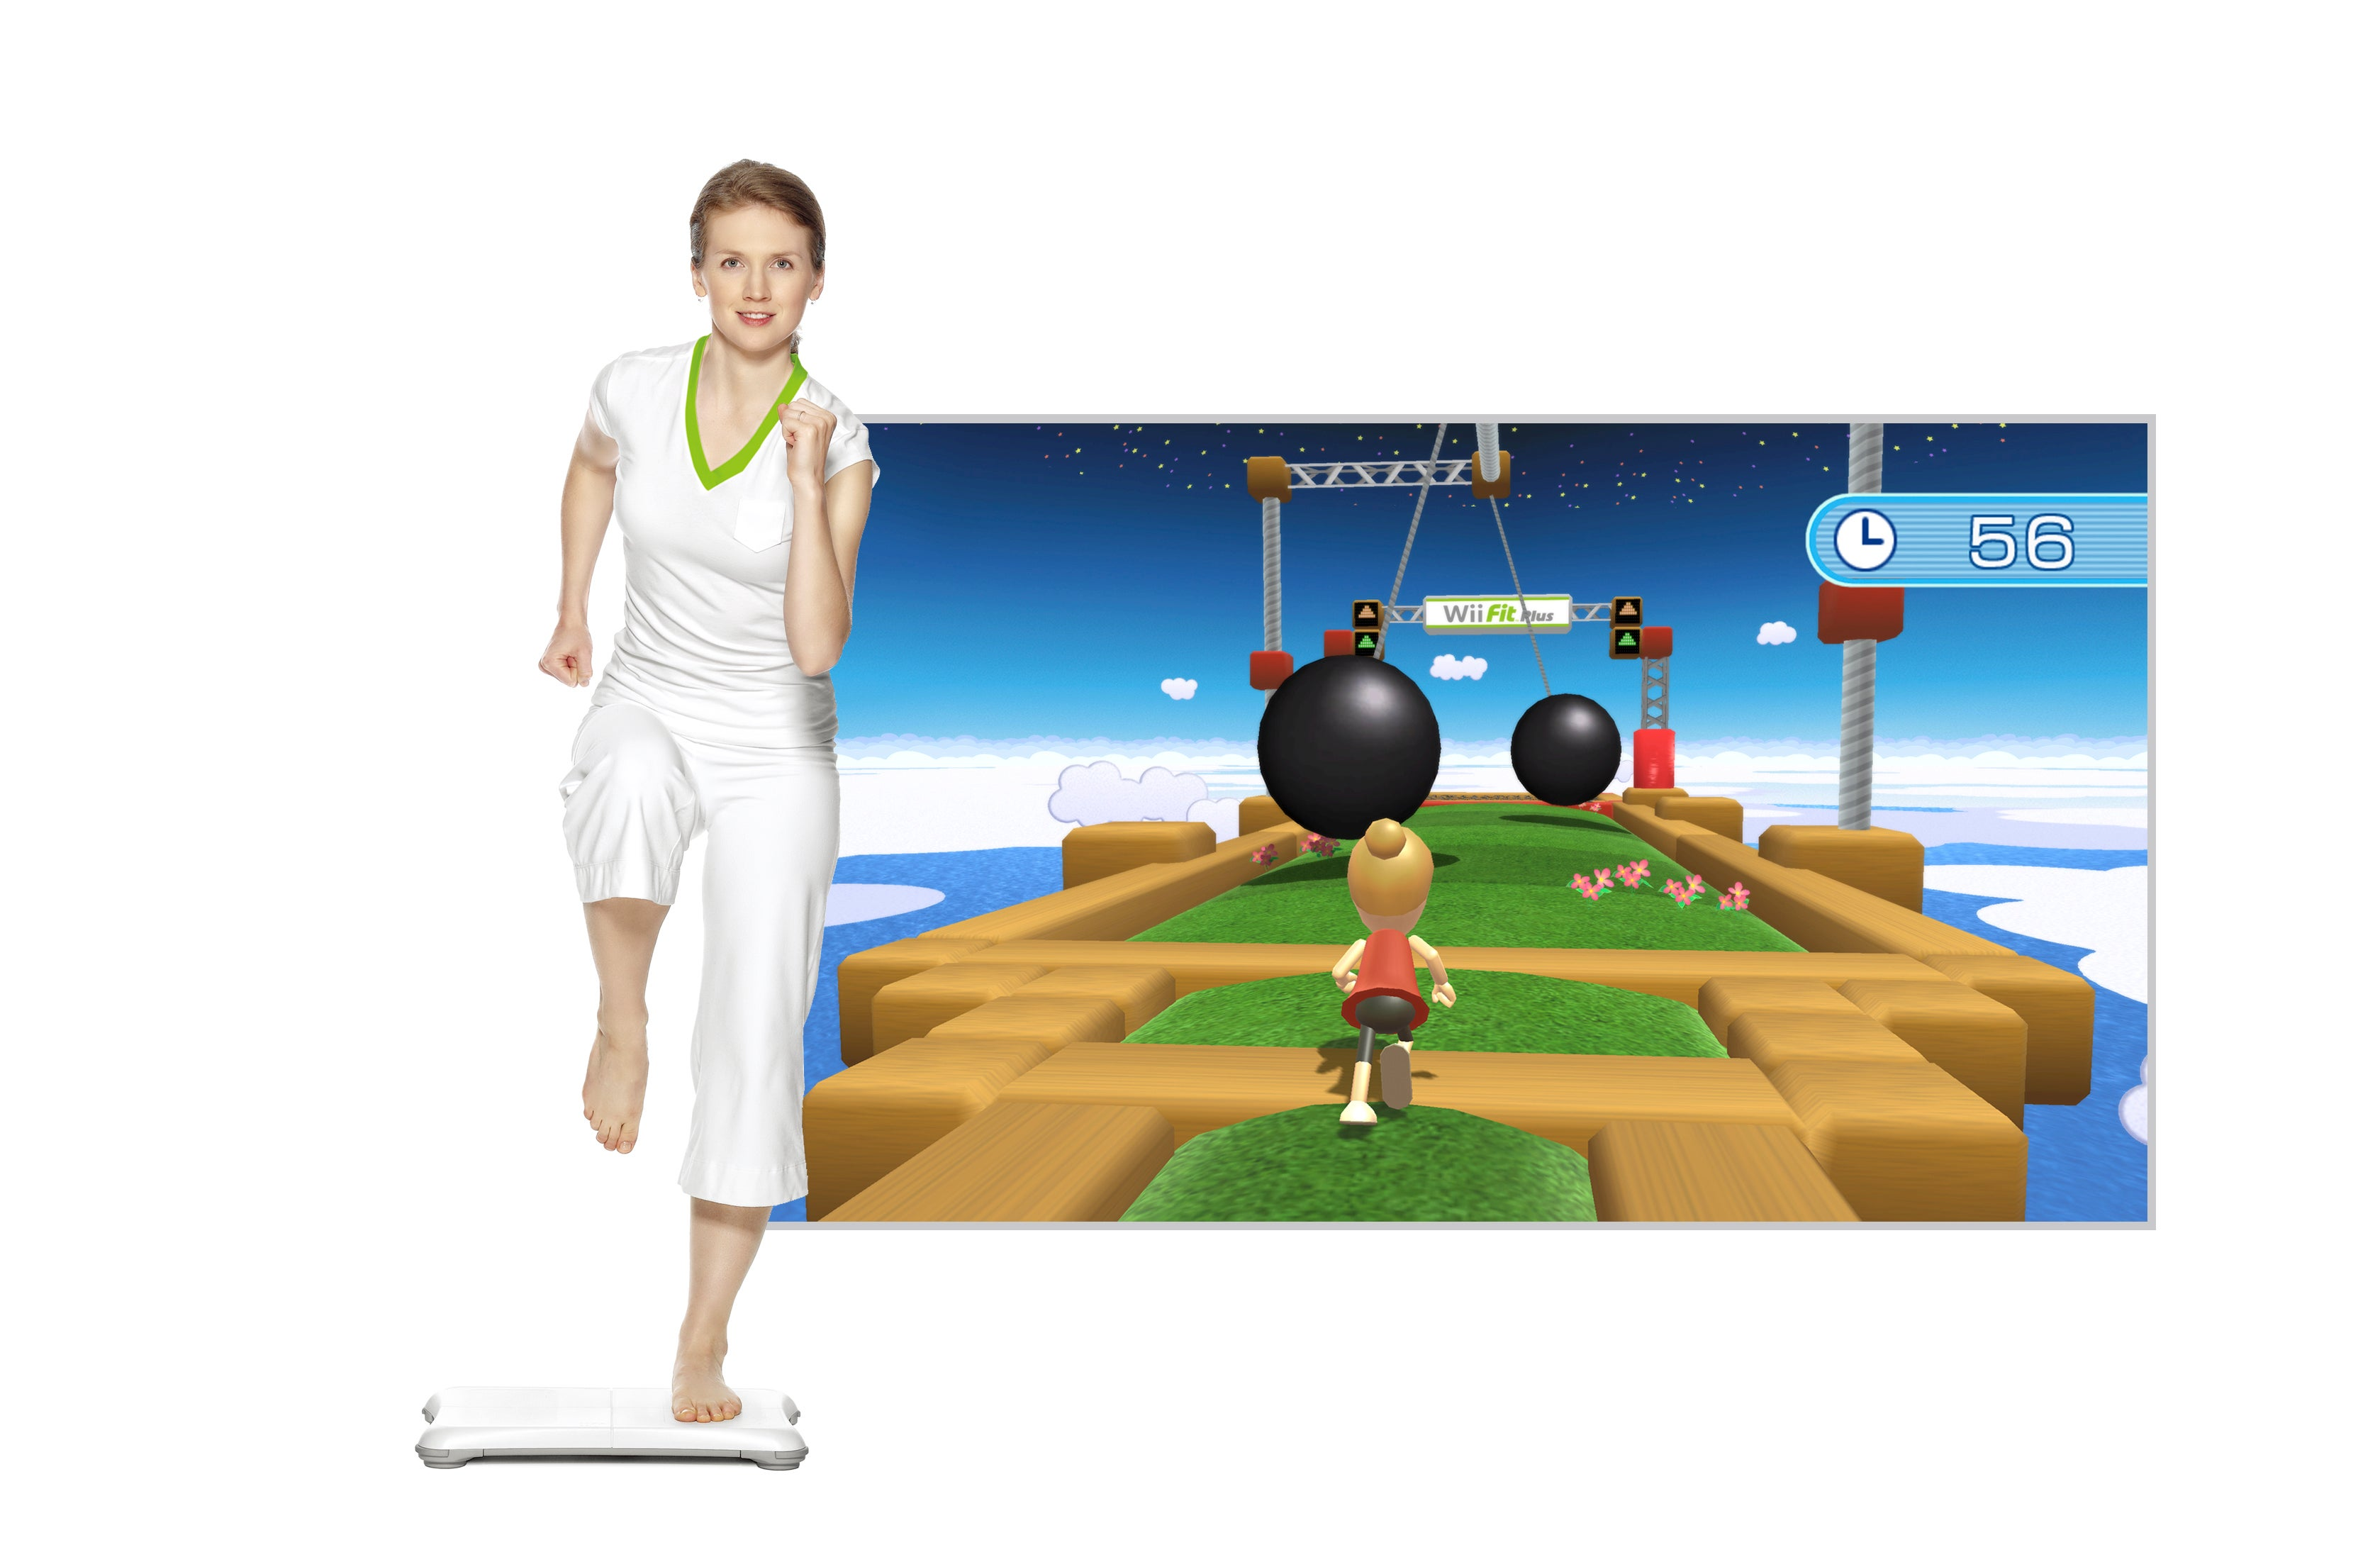 Wii Fit Plus Brings More Wii Fit This Fall